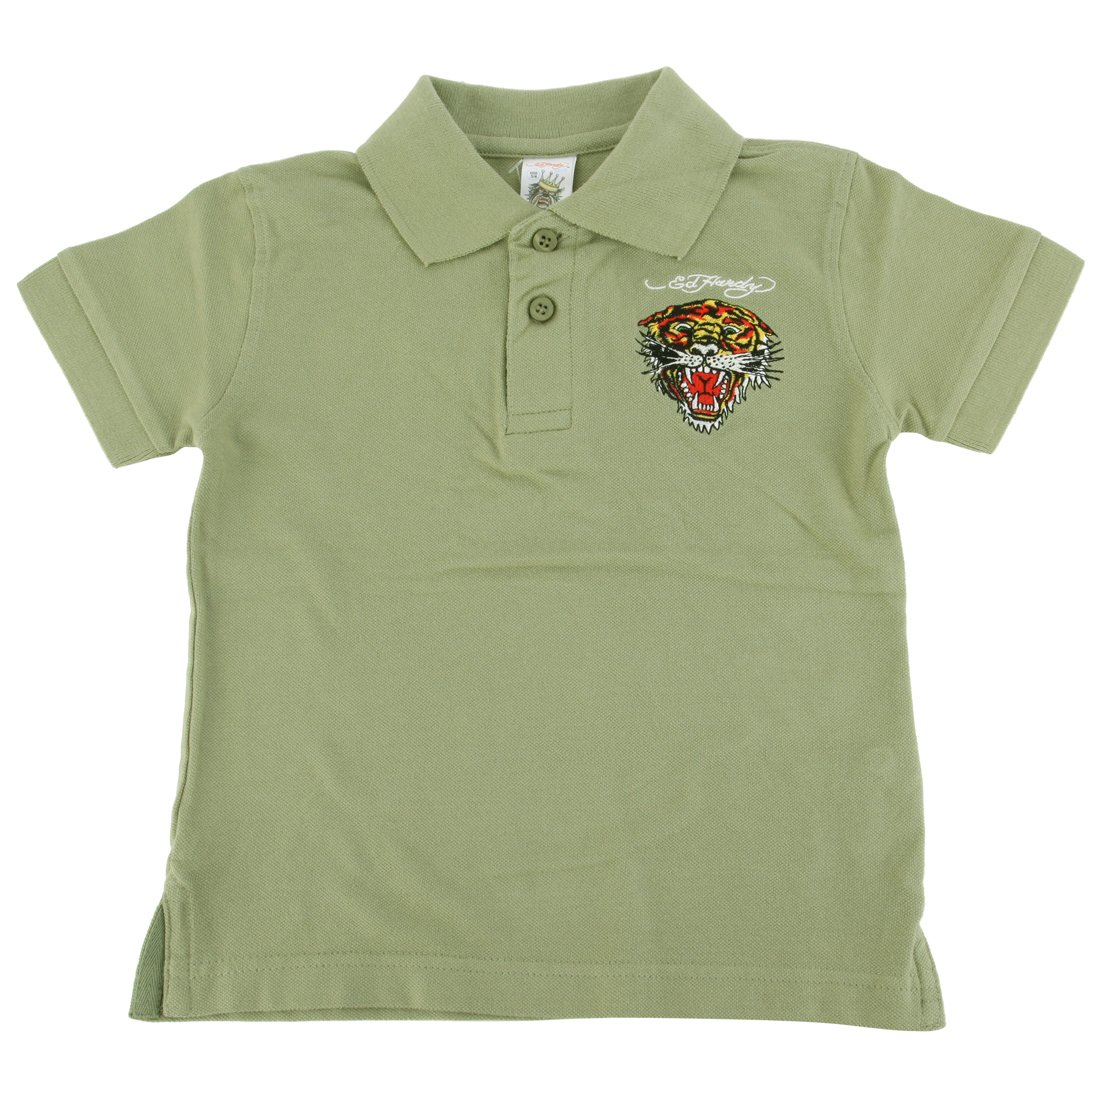 45c615c4 Embroidered bulldog, tiger, eagle, or panther Ed hardy Graphic design.  Short Sleeves button top collar shirt top tee for boys and girls kids unisex